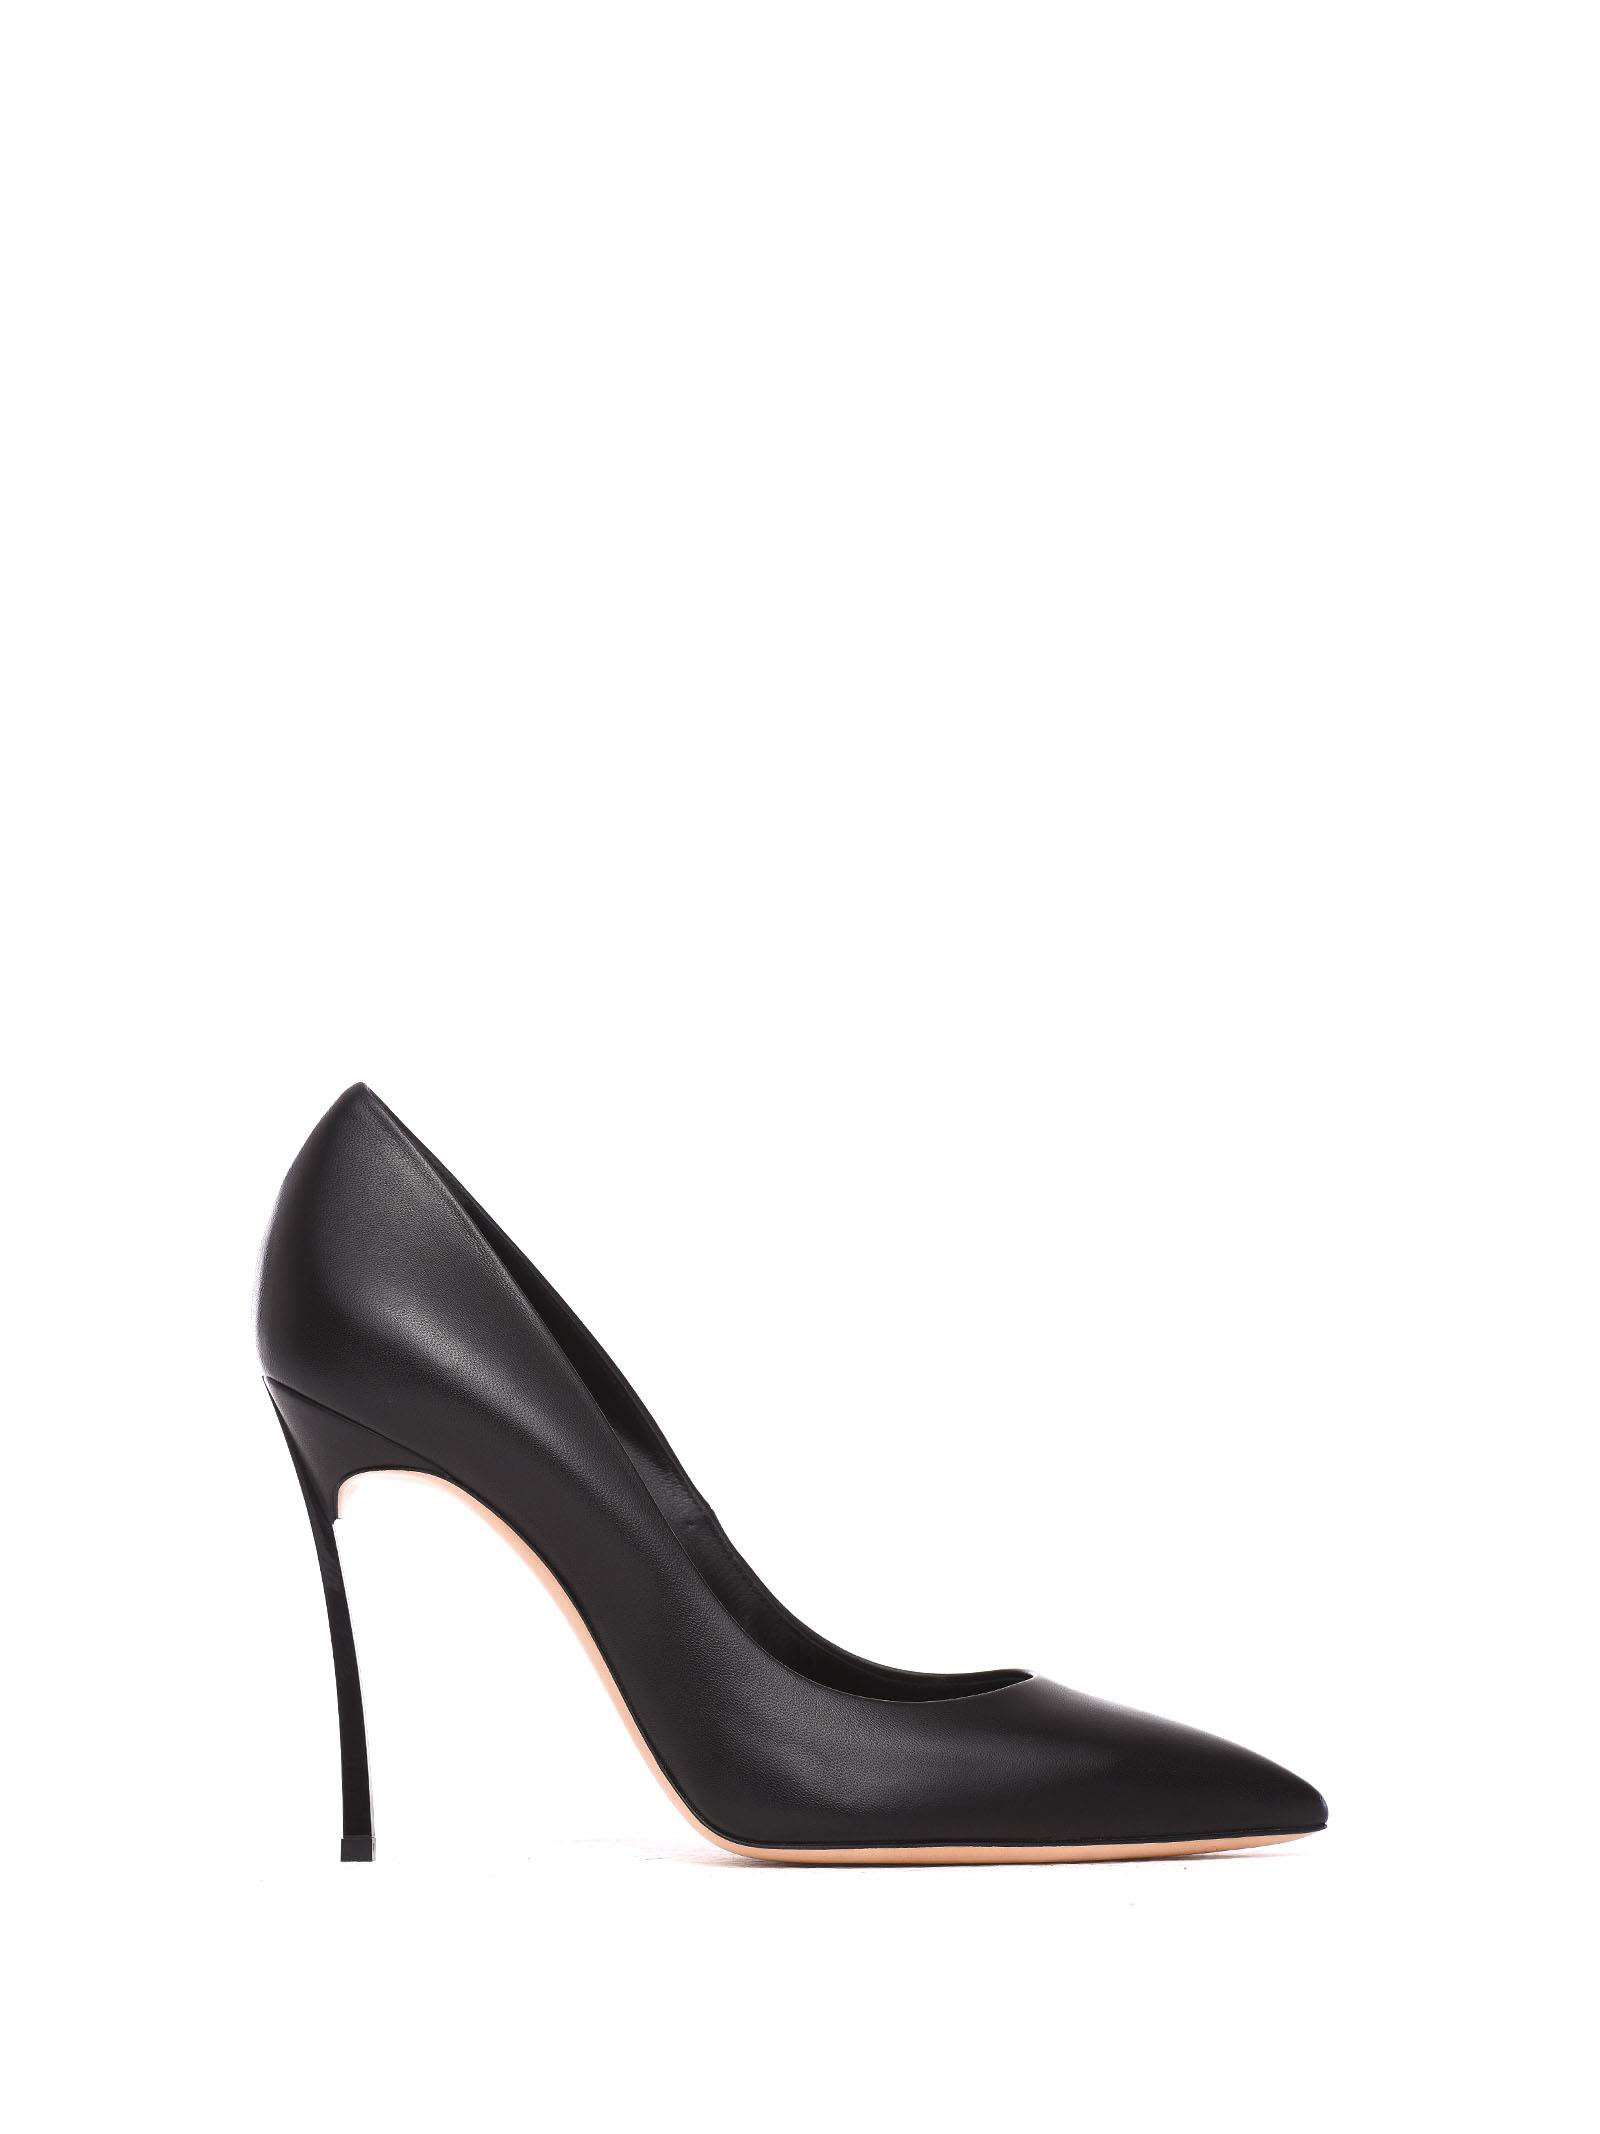 Casadei Pumps In Black Leather